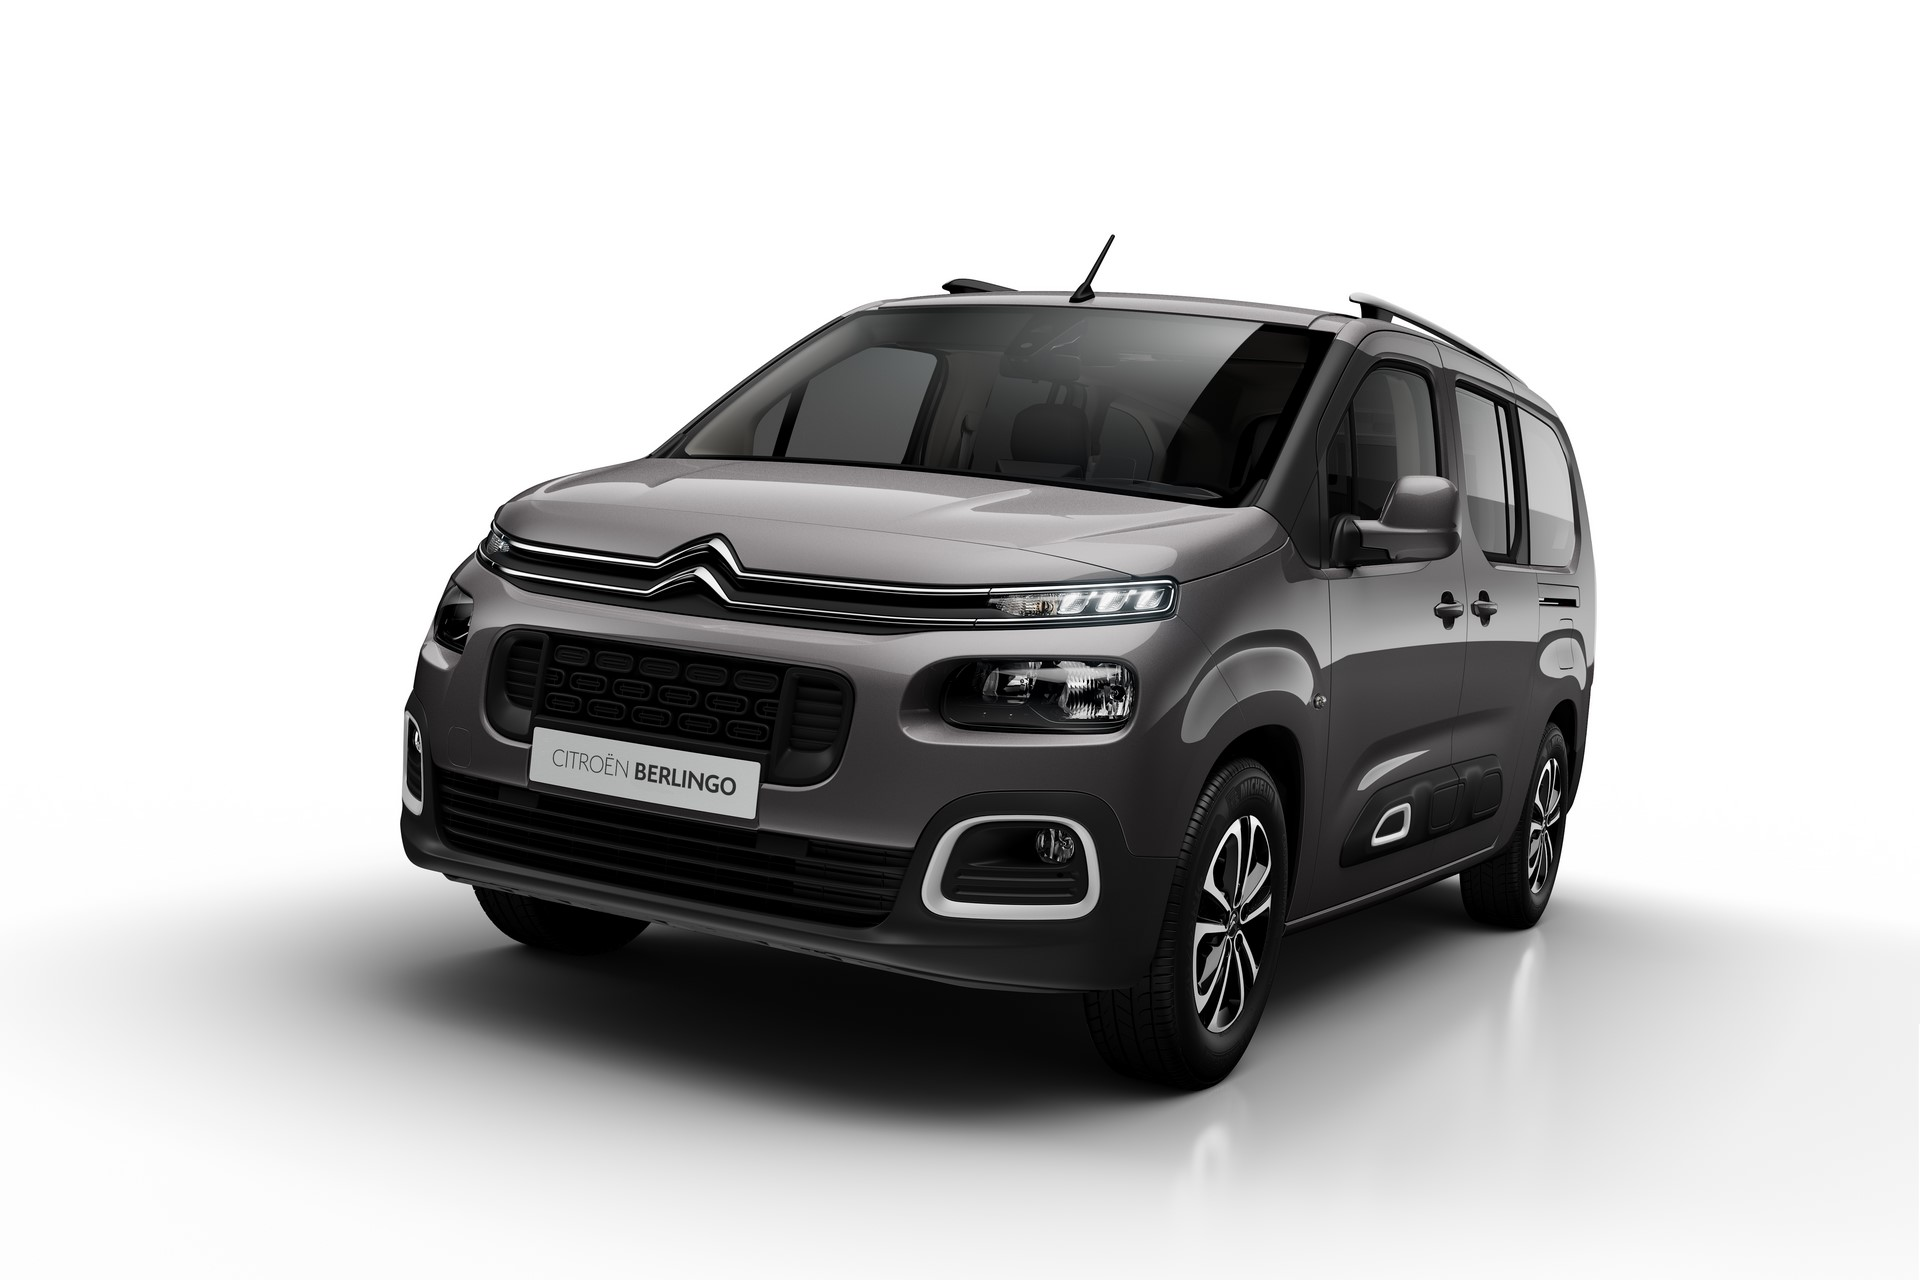 Citroen Berlingo 2018 (59)